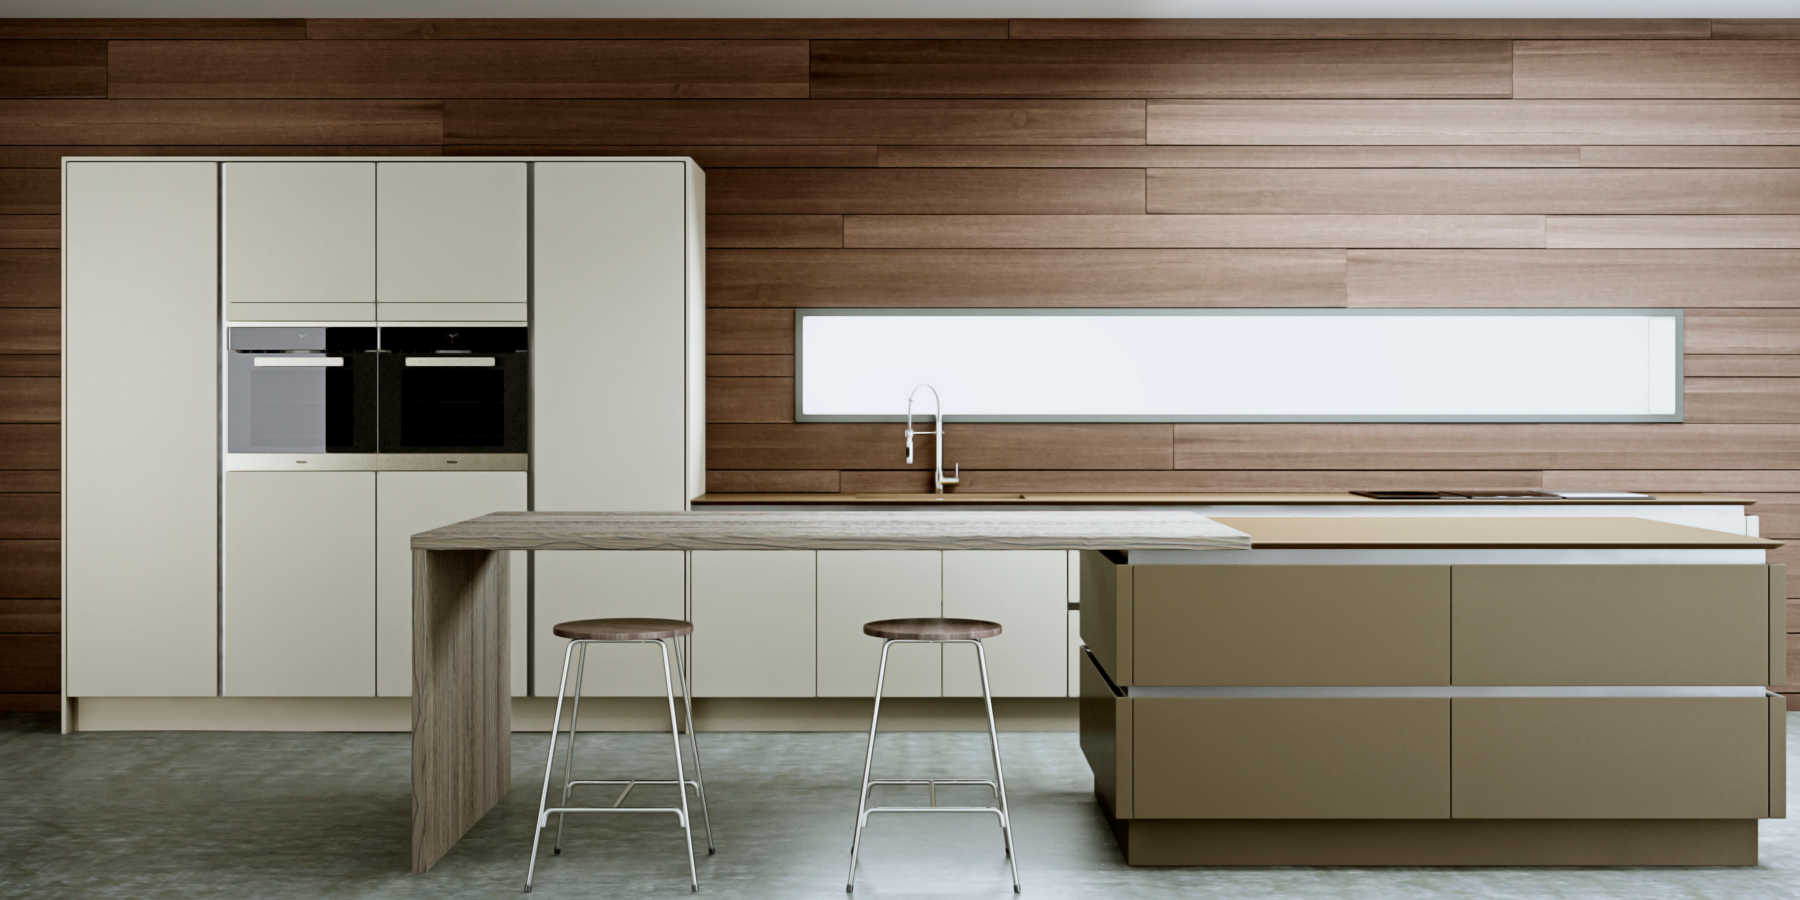 Linear avant gallery kitchens for Linear kitchen design